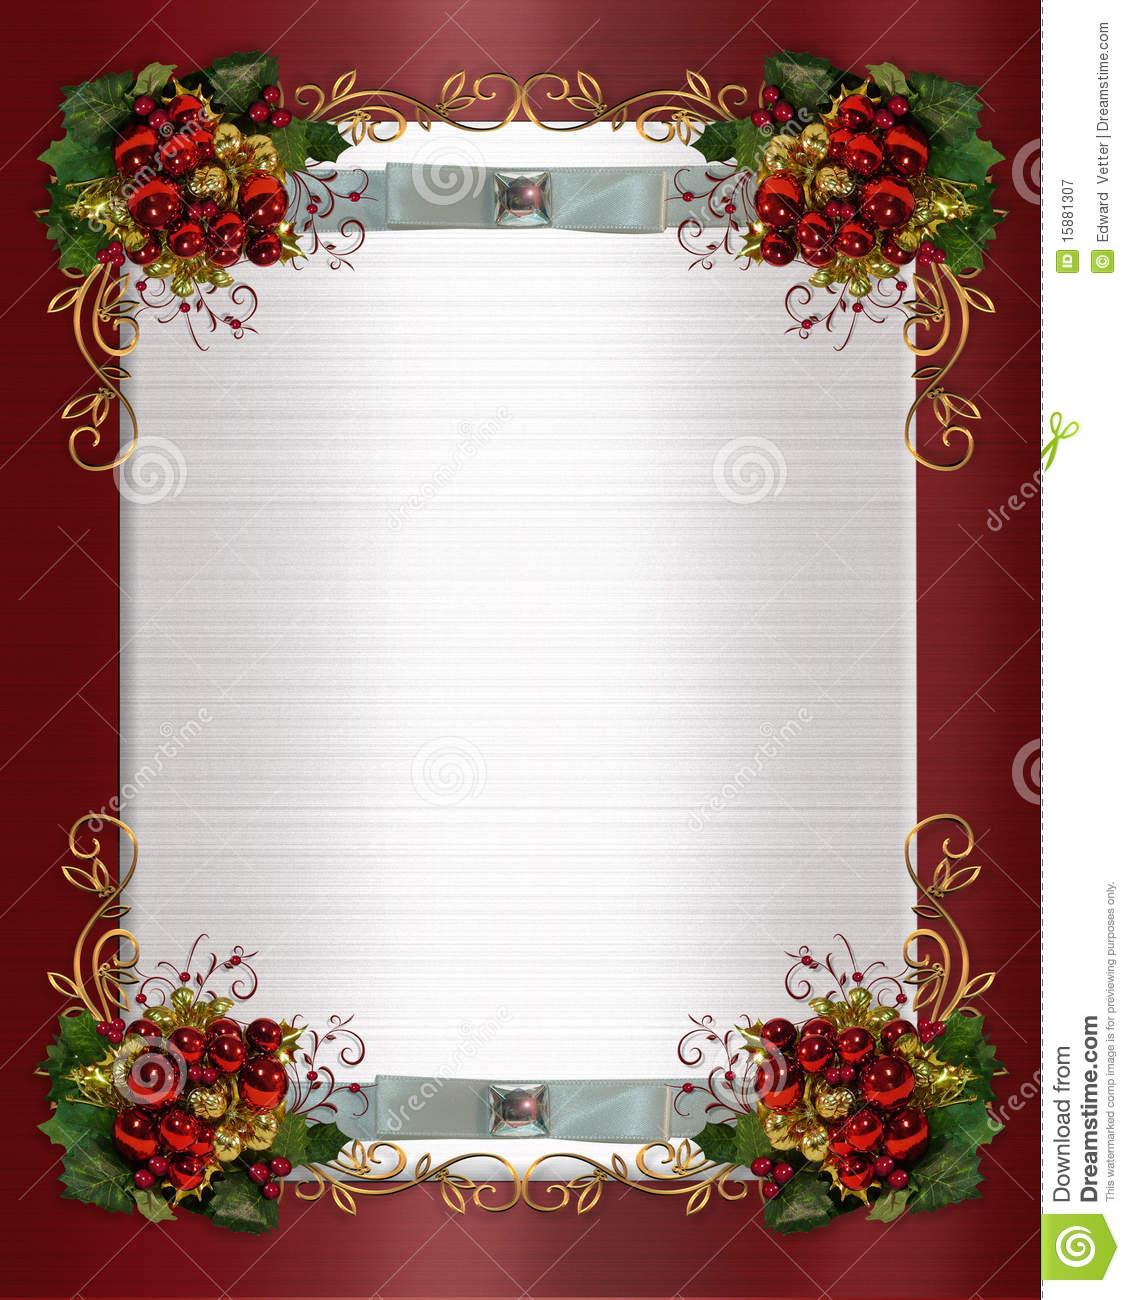 Christmas Or Winter Wedding Border Stock Illustration ...